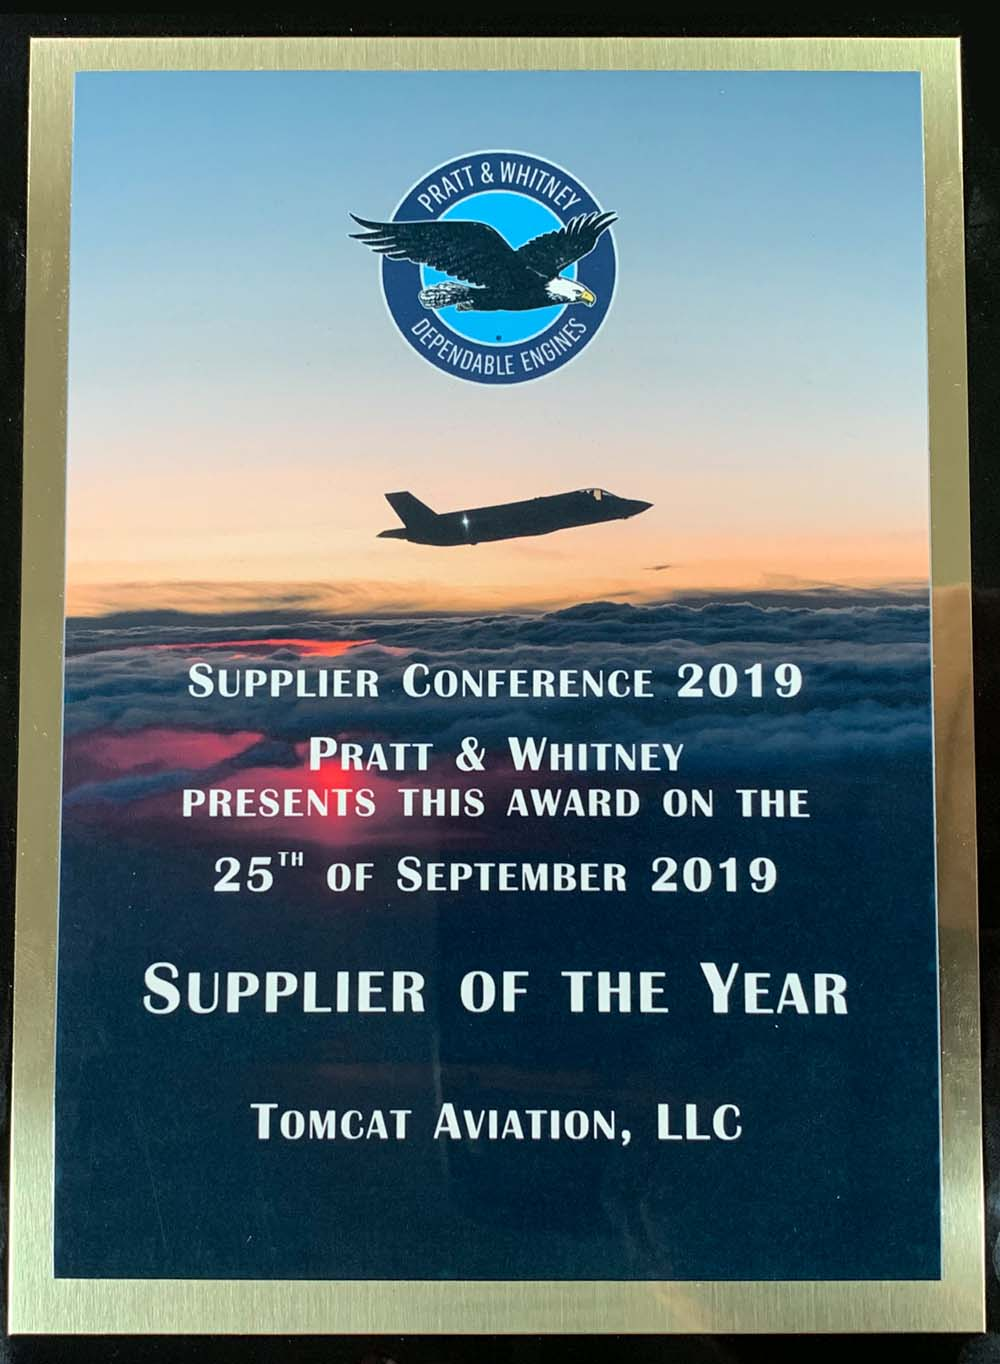 TOMACT AVIATION Supplier of the Year